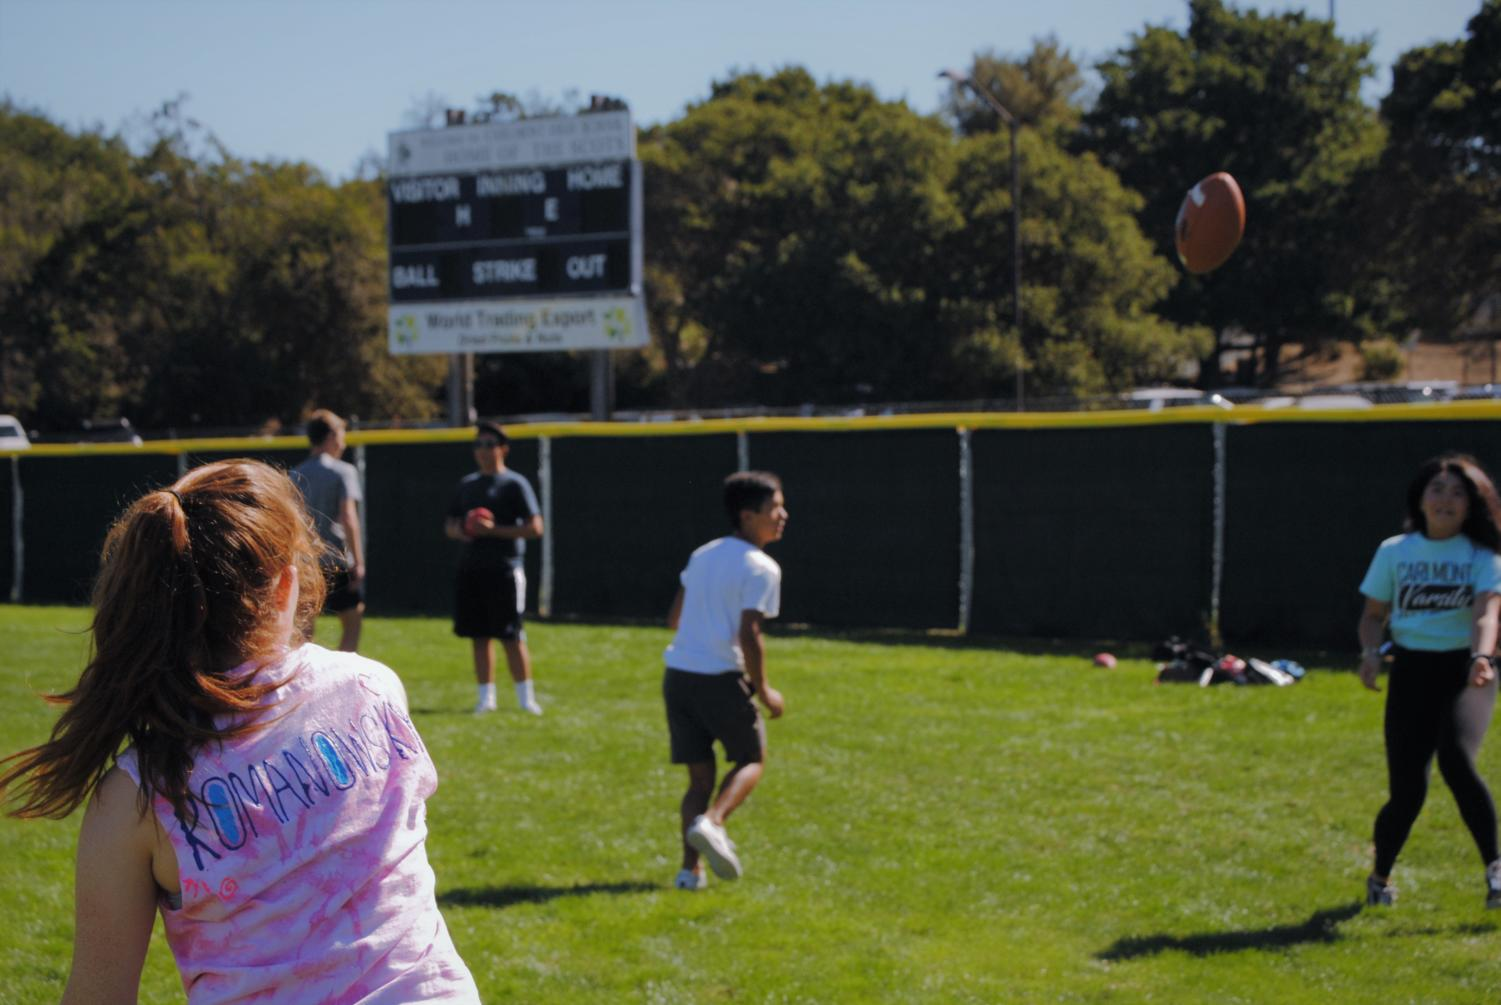 Player Lexi Romanowsky throws the football to Sophia Reyes on Saturday, Oct. 5. Romanowsky has been practicing her throws for the upcoming tournament.